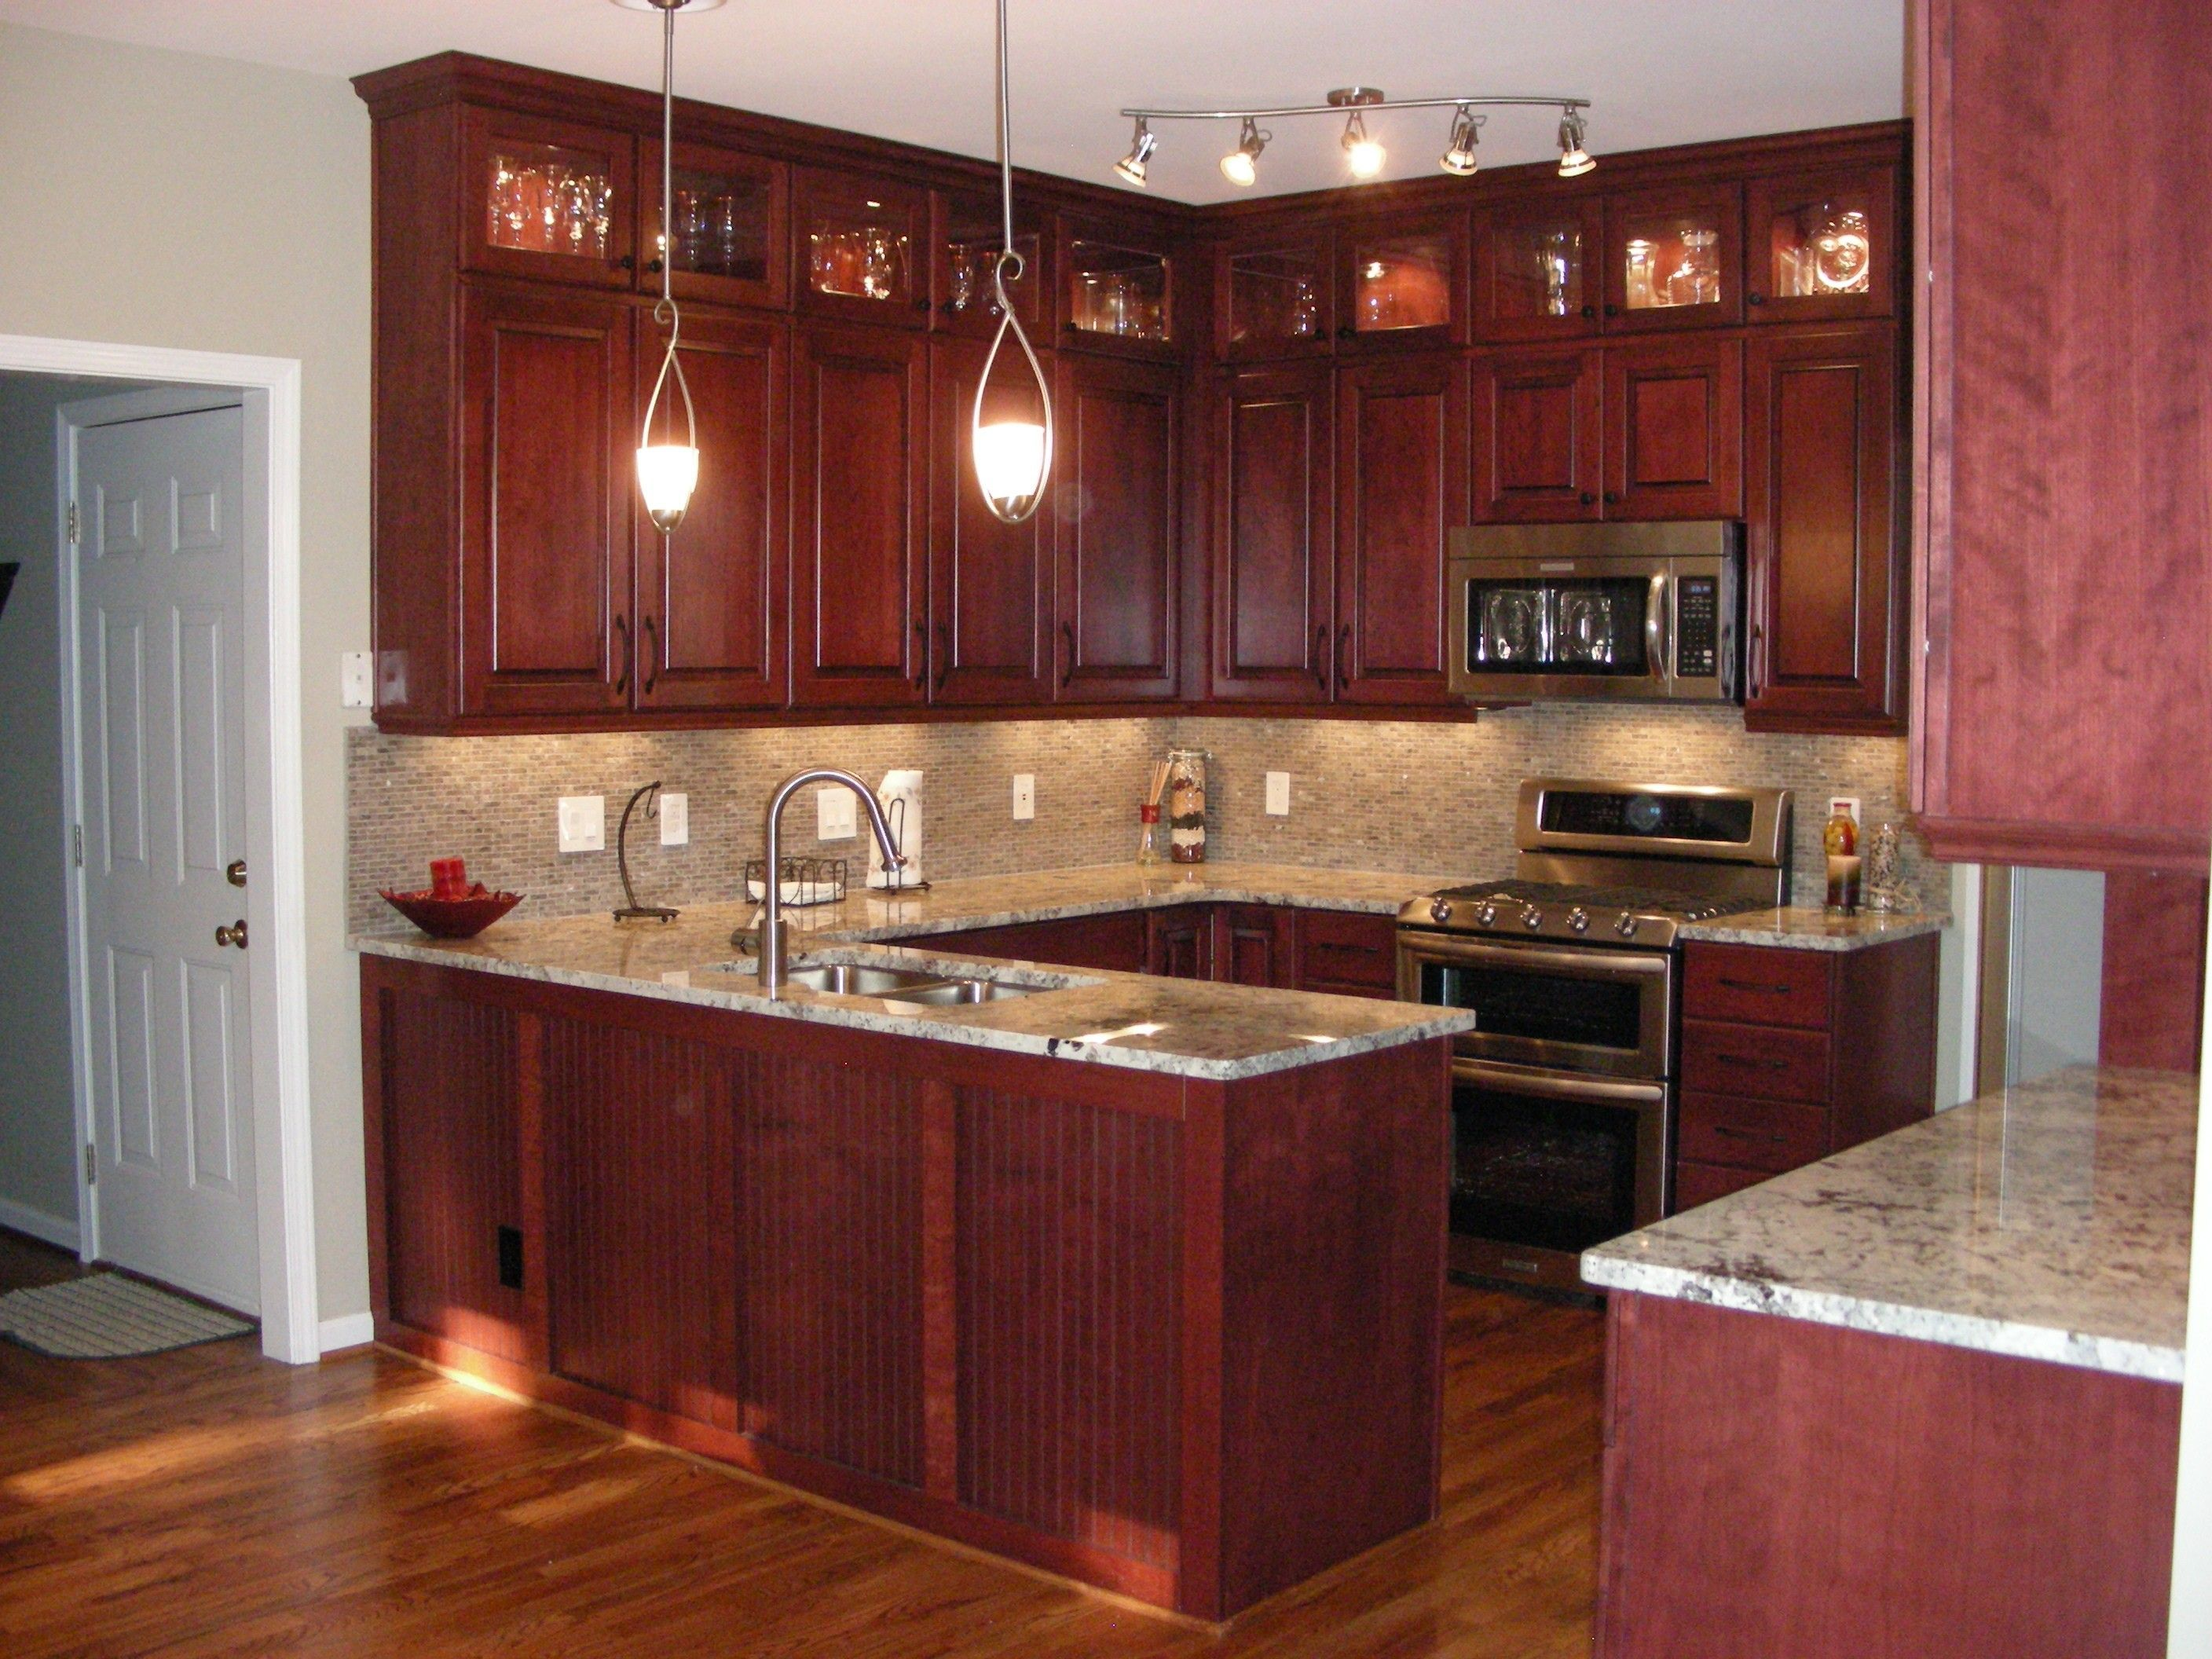 10 Marvelous Small Kitchen Remodel With Pantry Ideas Kitchen Remodel Small Cherry Wood Kitchens Cherry Wood Kitchen Cabinets Red wood kitchen cabinets